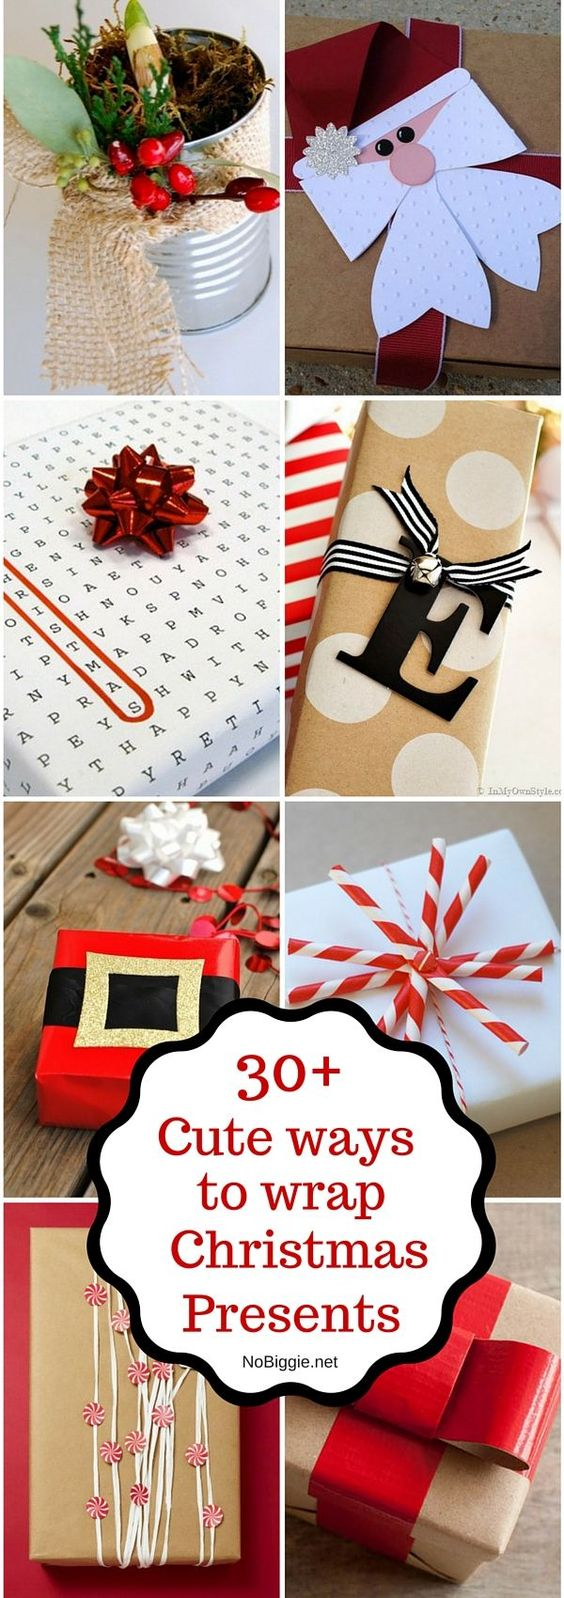 30+ Christmas Wrapping Ideas - awesome ideas for wrapping Christmas gifts: